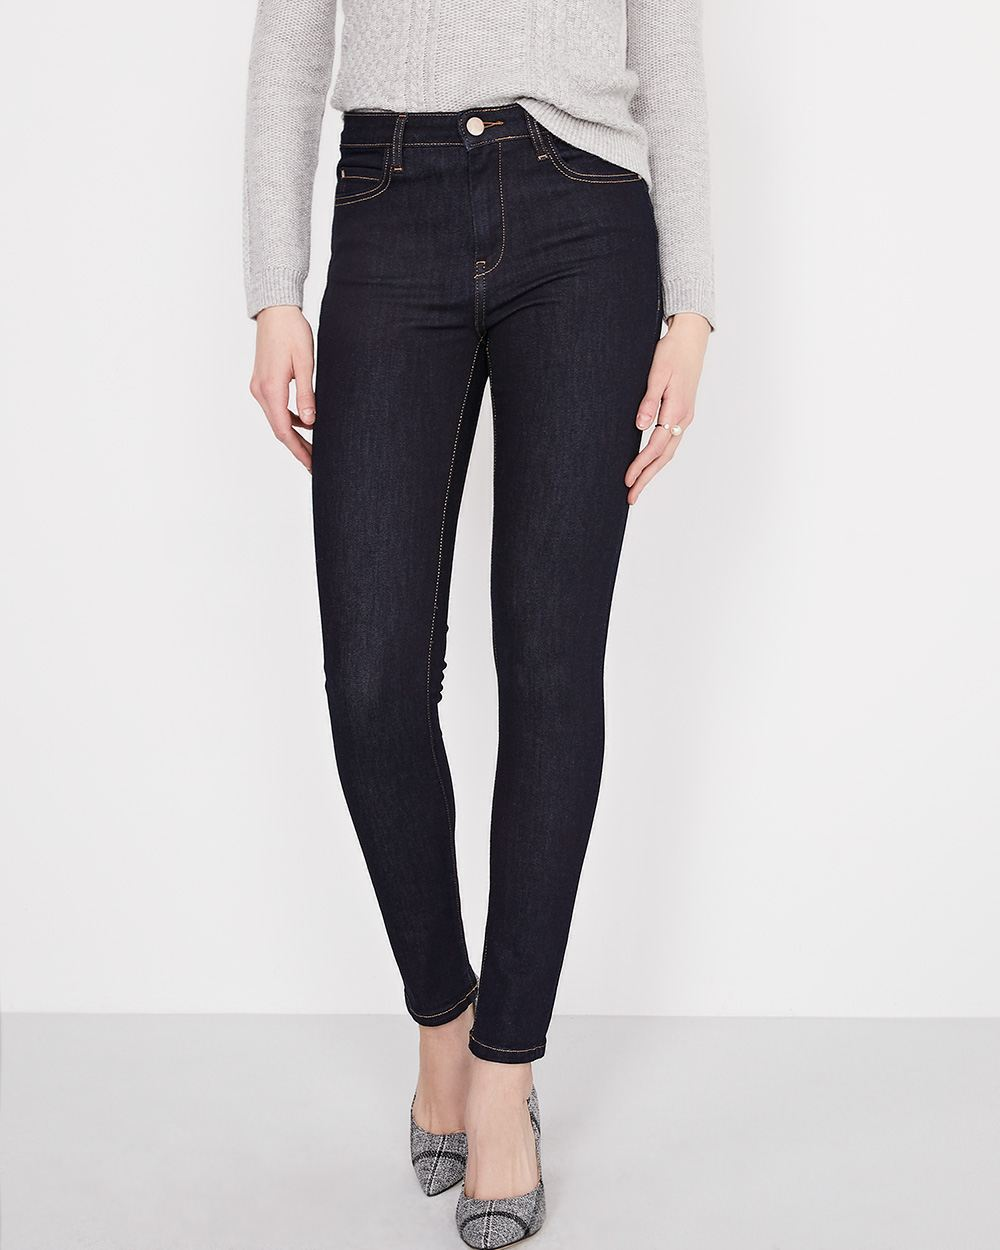 High-rise extreme 360 stretch dark blue wash skinny jeans